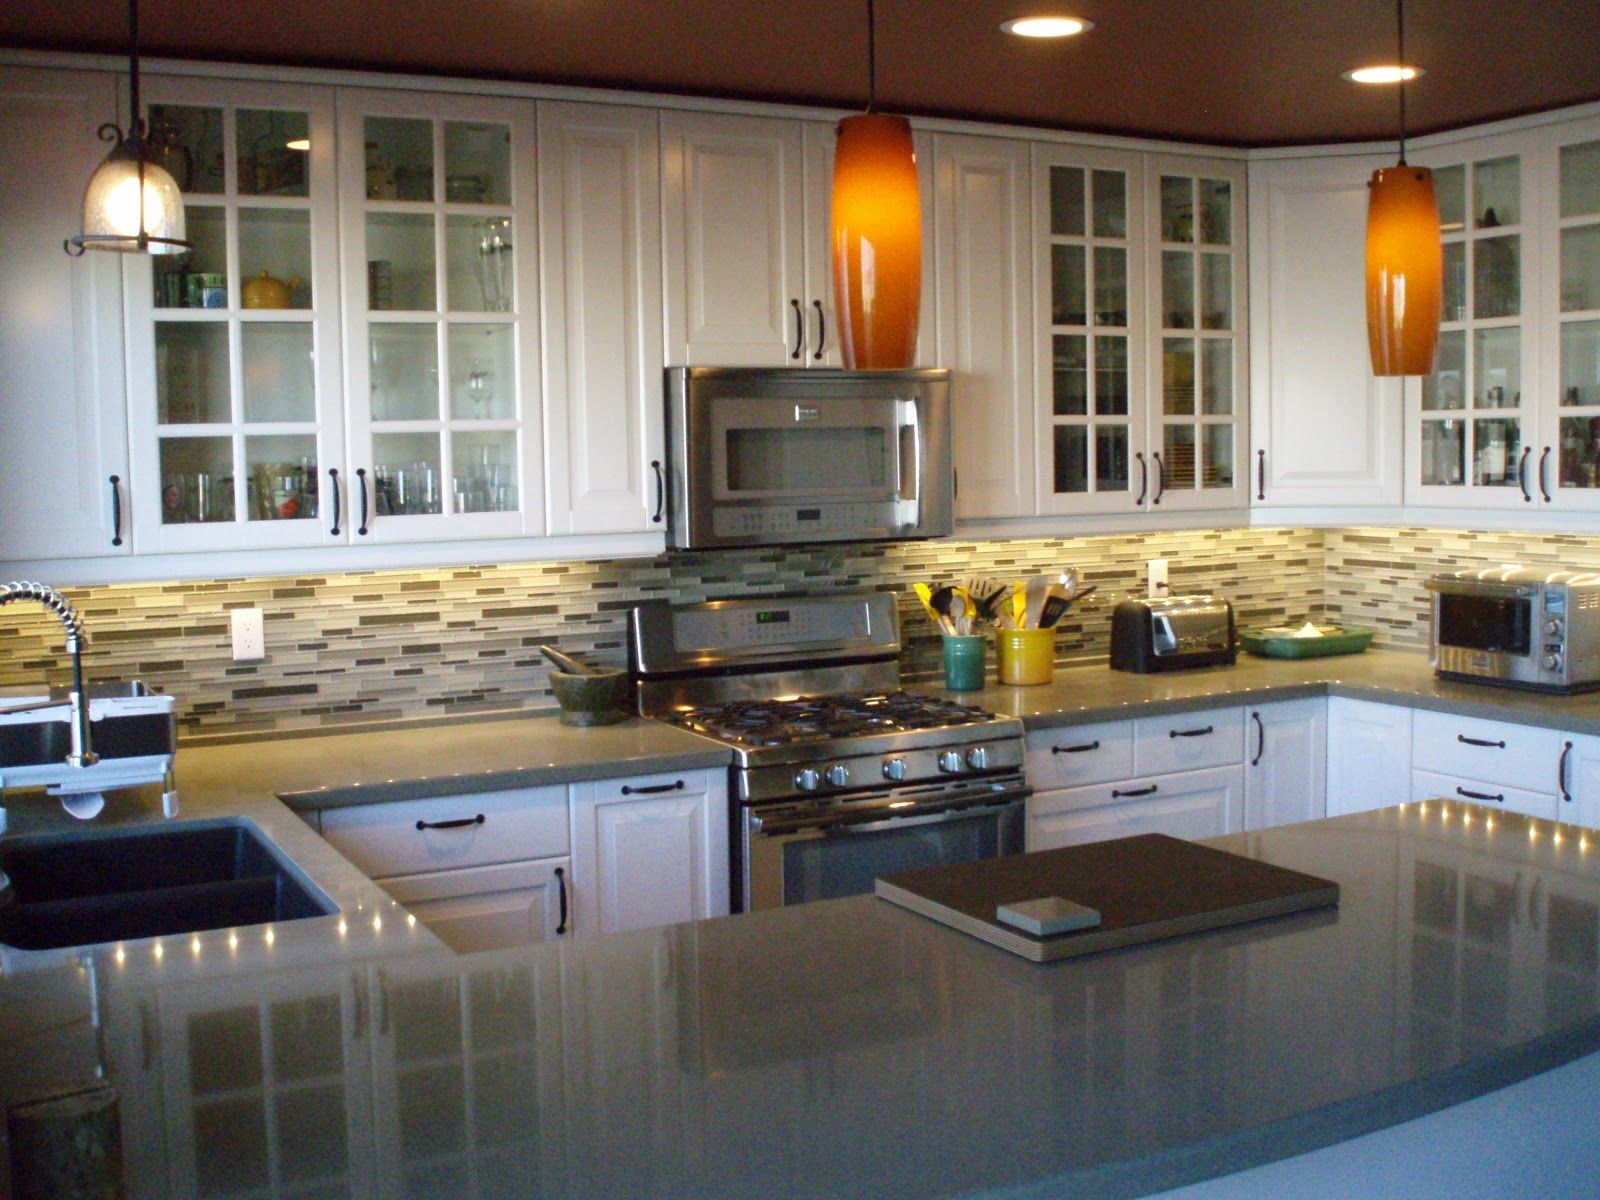 The IKEA Kitchen Remodeling Blog: How to Save Money on an IKEA ...